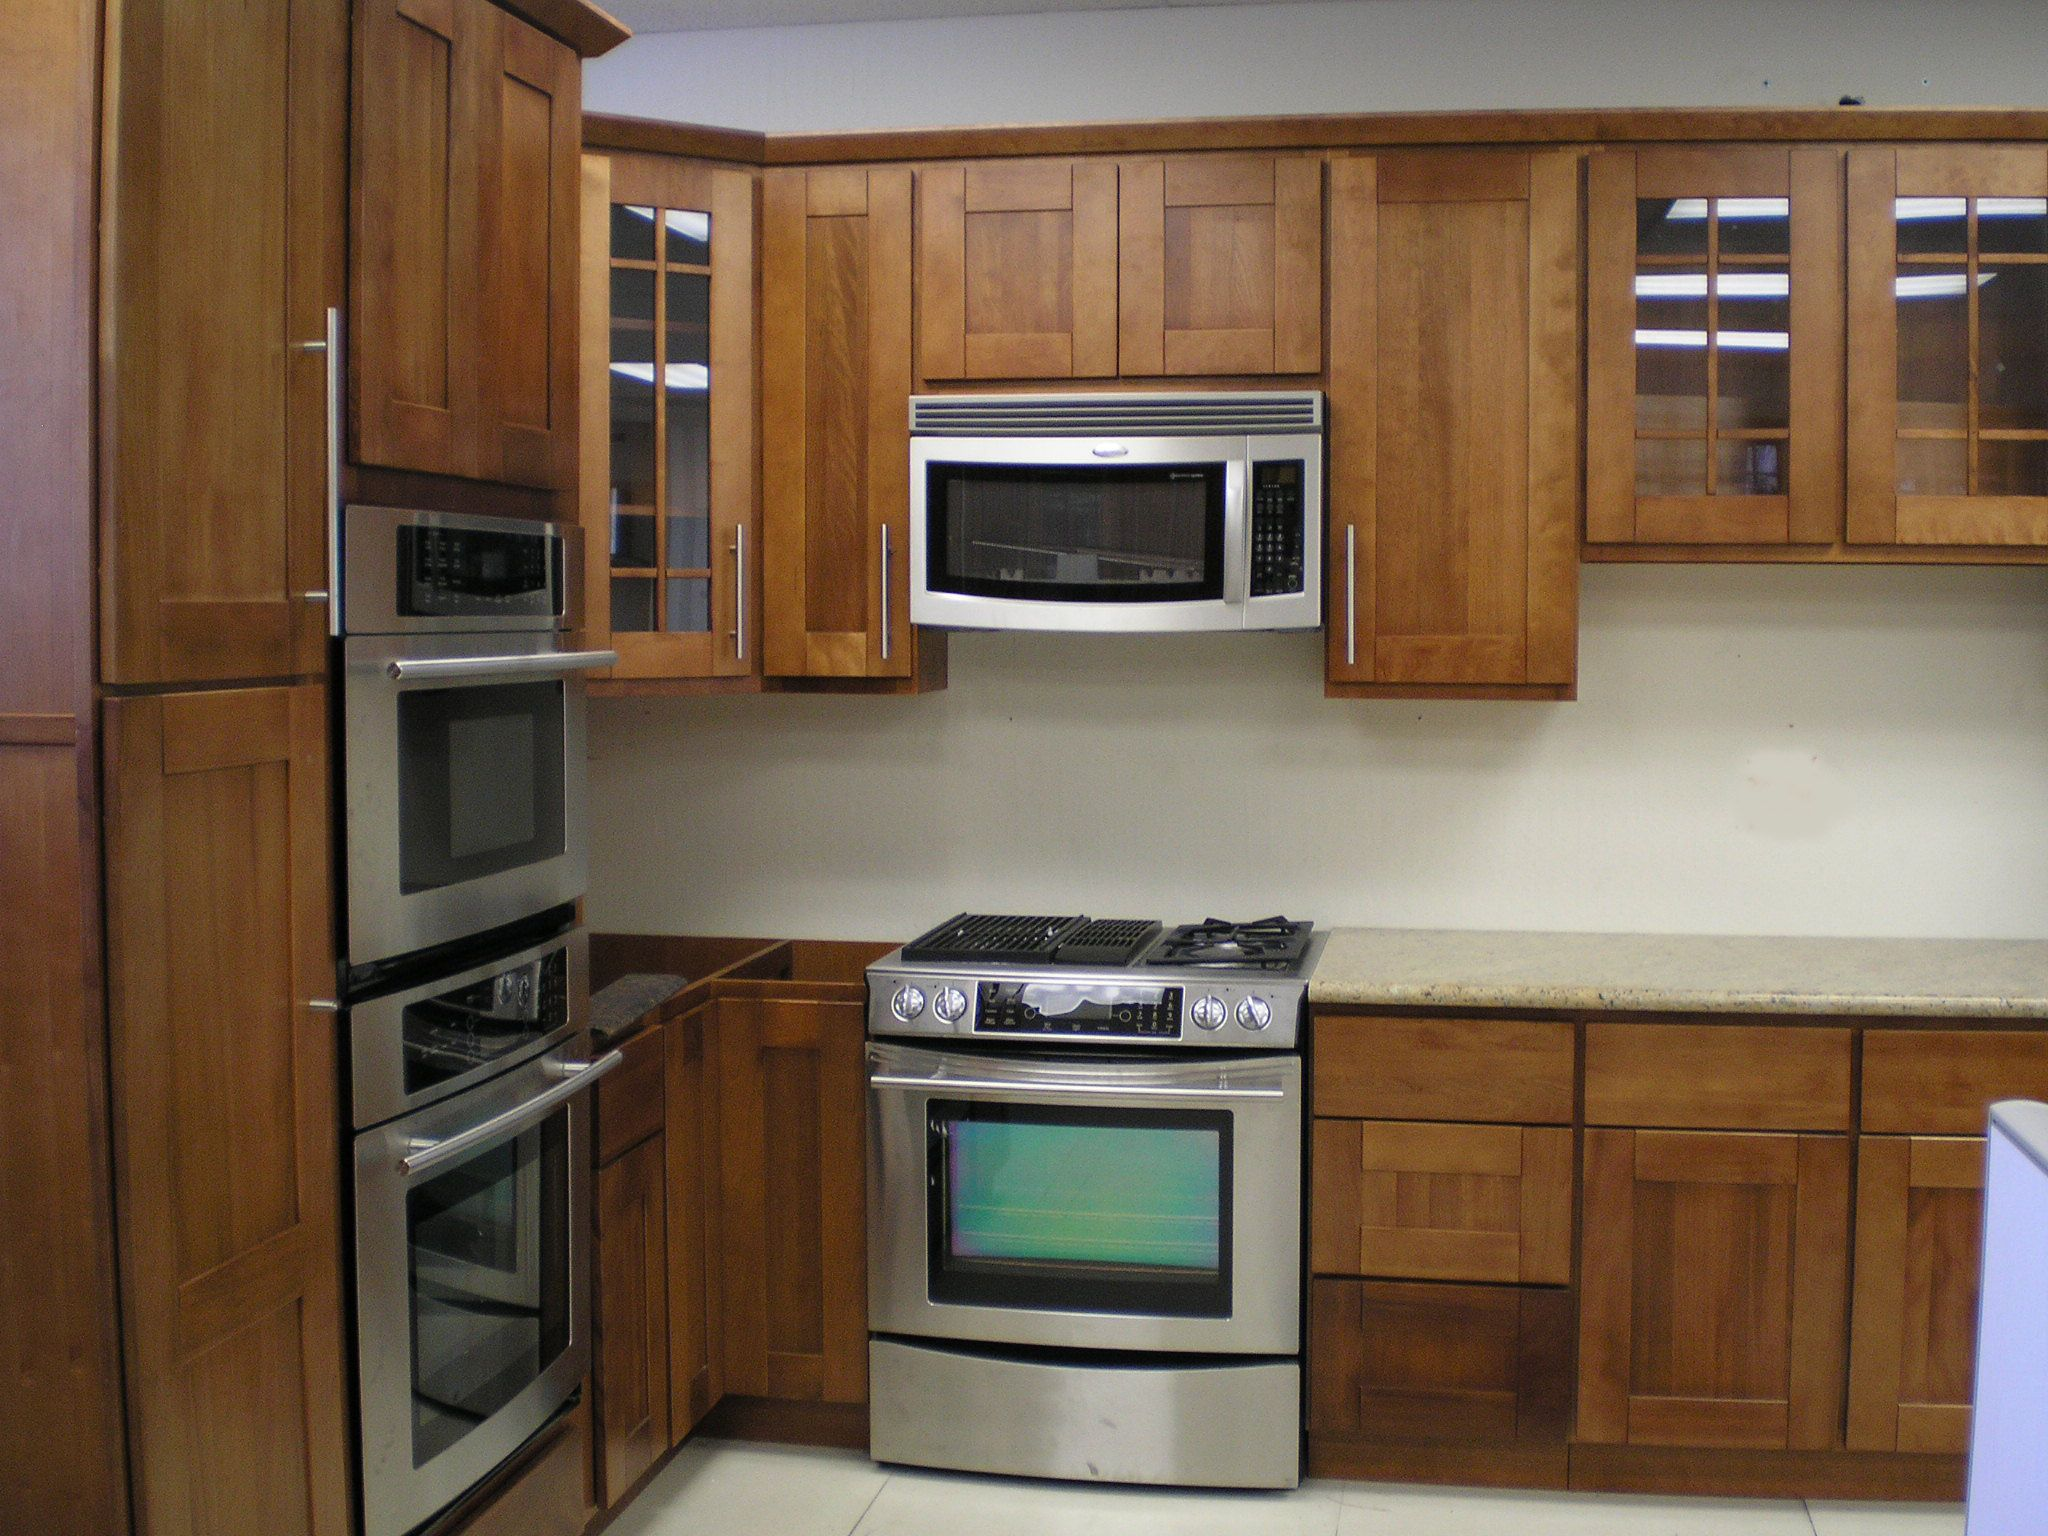 kitchen cabinets closeout kitchen cabinets on raised panel shaker style toffee finish - In Style Kitchen Cabinets